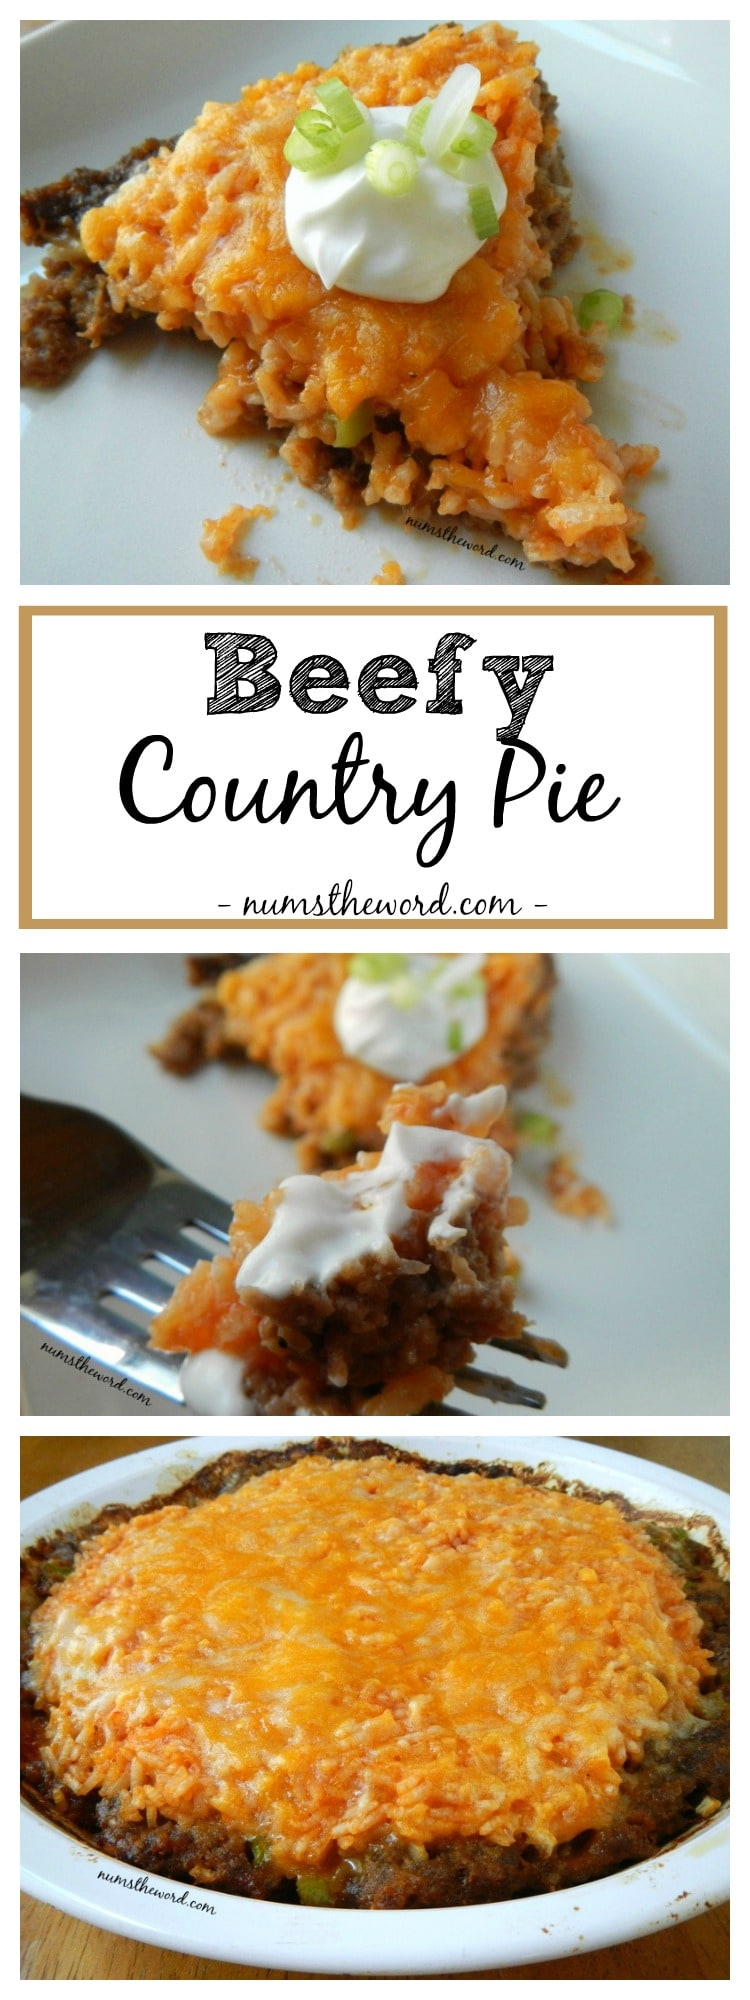 Beefy Country Pie